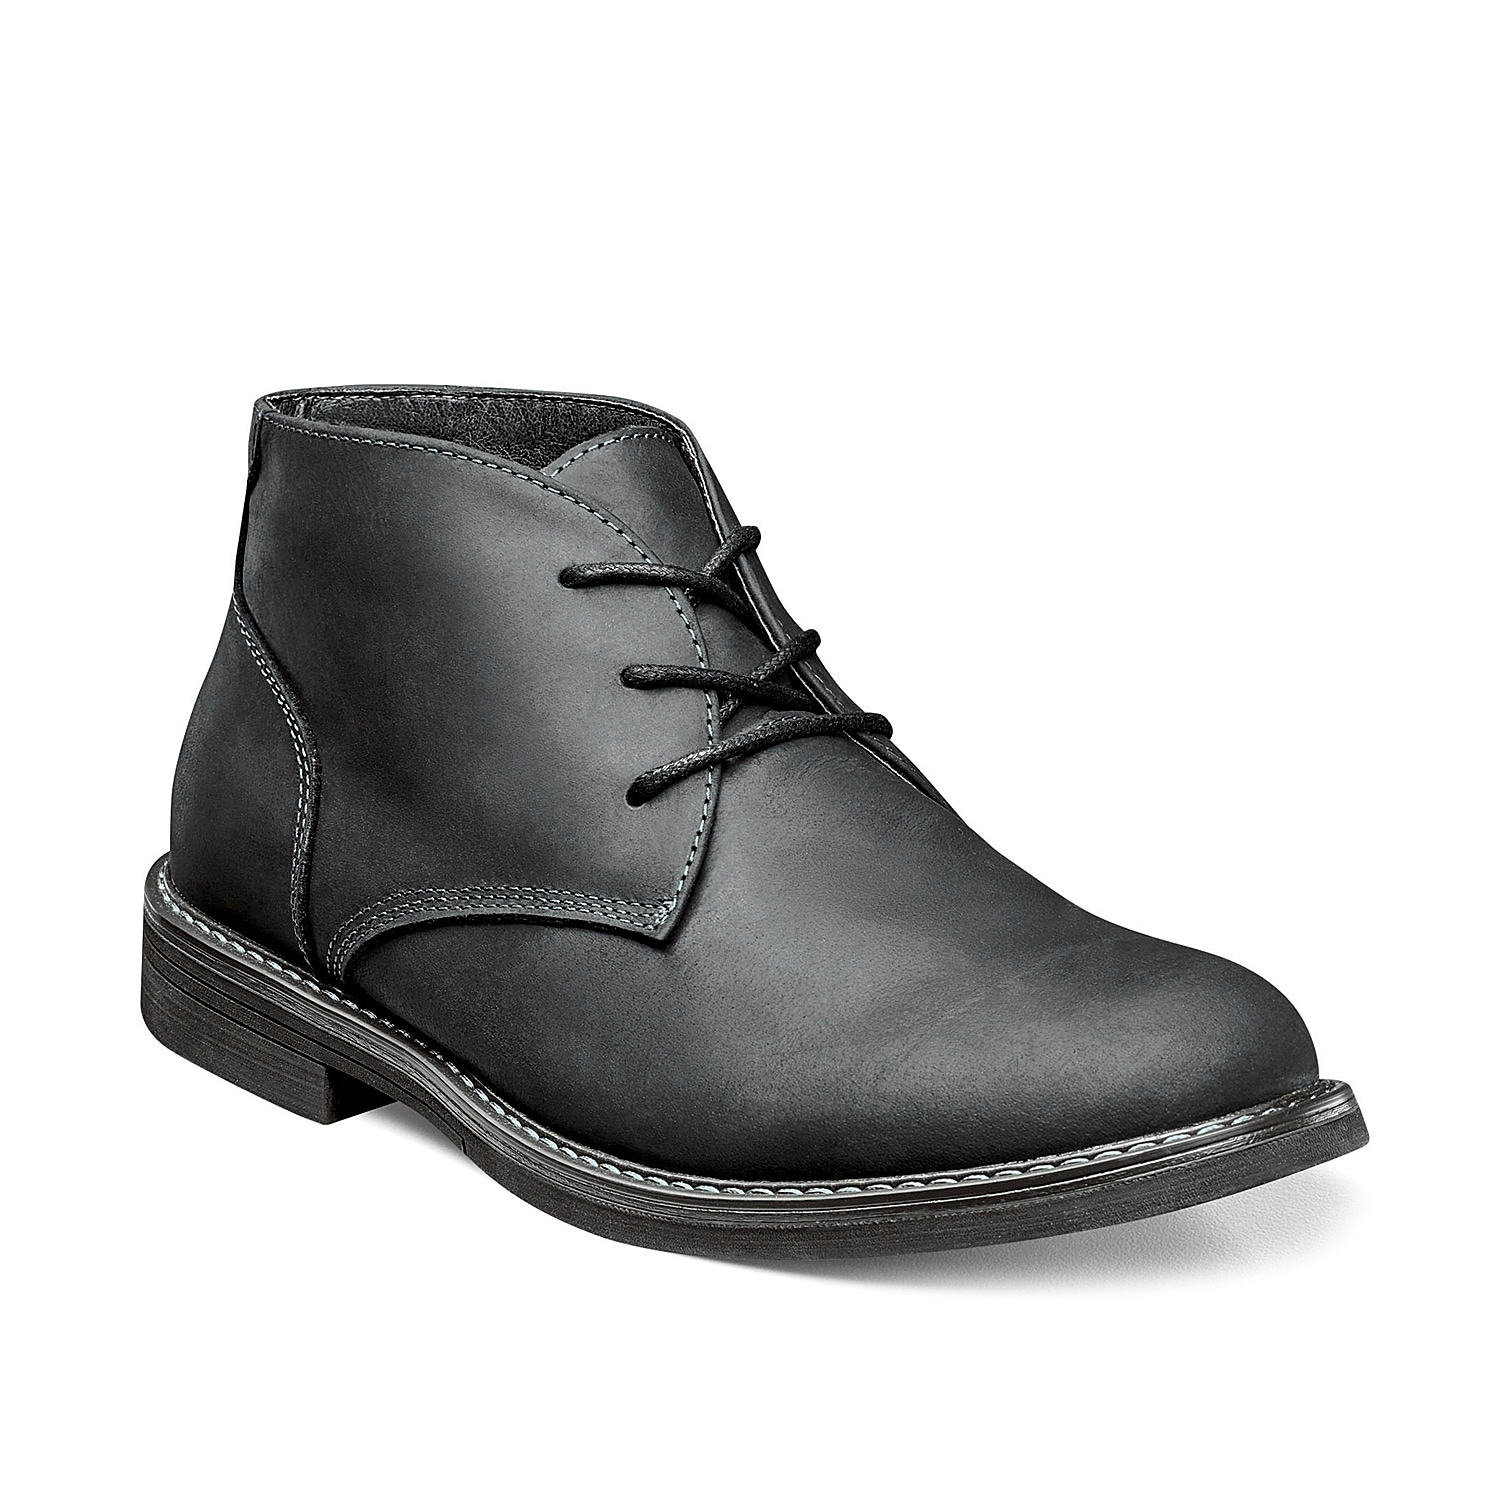 Perfect your casual outdoor style with this Nunn Bush Lancaster chukka boot. Highlighted with tonal stitching accents, this boot has a Dual Comfort footbed to deliver long-lasting comfort.